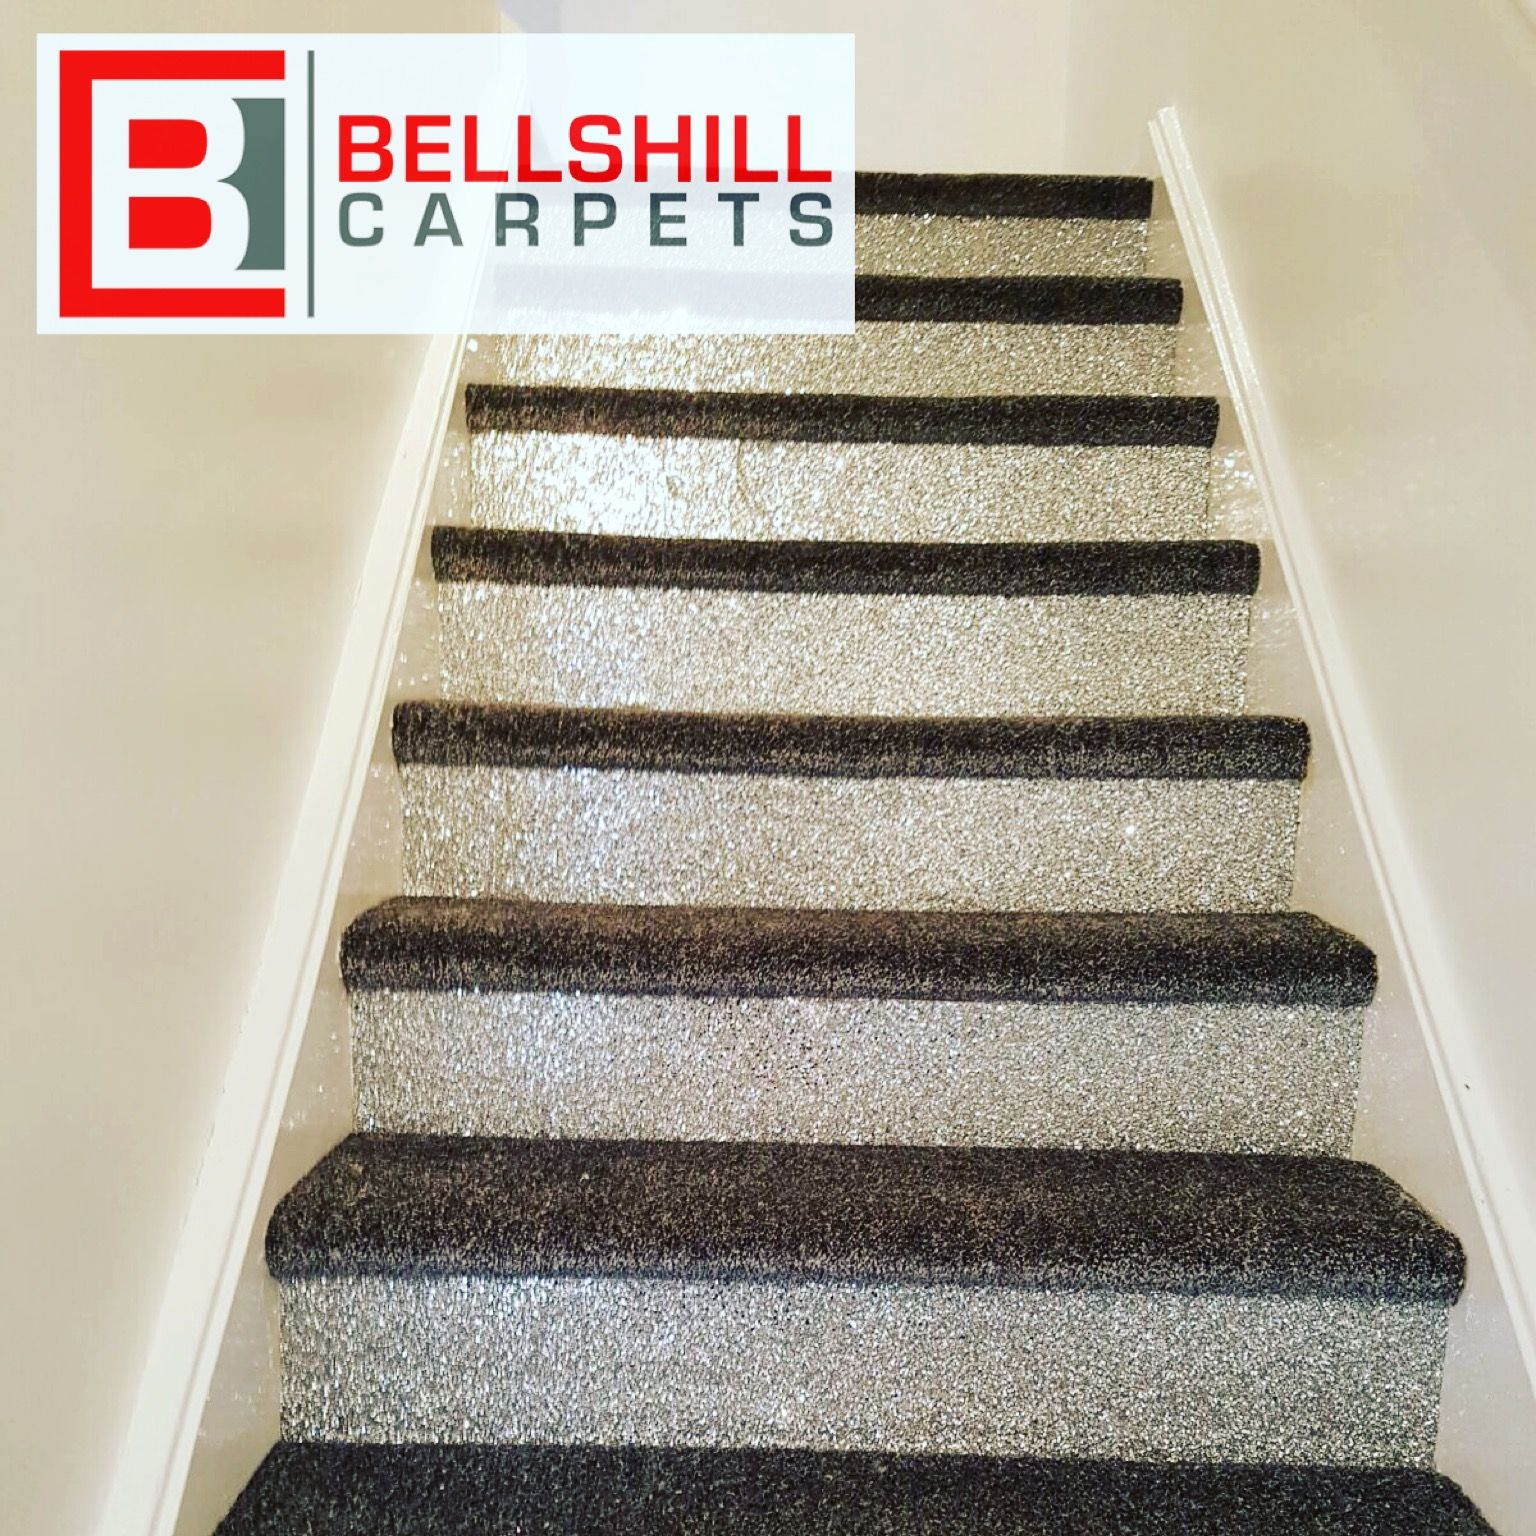 Staircase Design By Connie On Bling And Sparkle   Glitter Stairs With Carpet